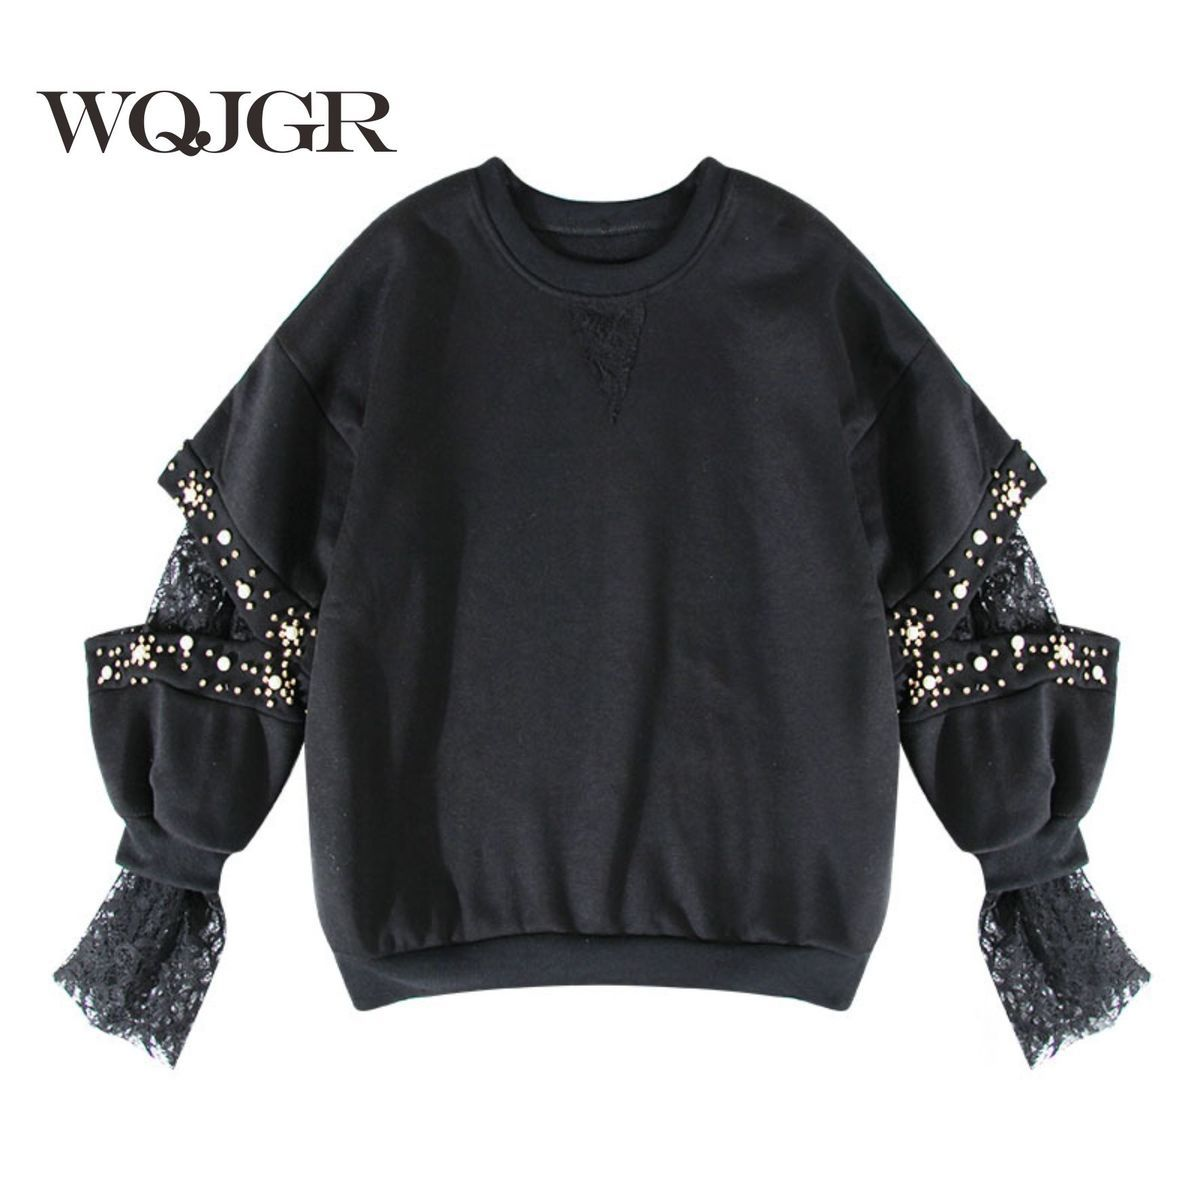 WQJGR 2020 Autumn Pullovers Women Hoodies Nail Pearl Hollow Out Embroidery Split Joint Lace Cuff Head